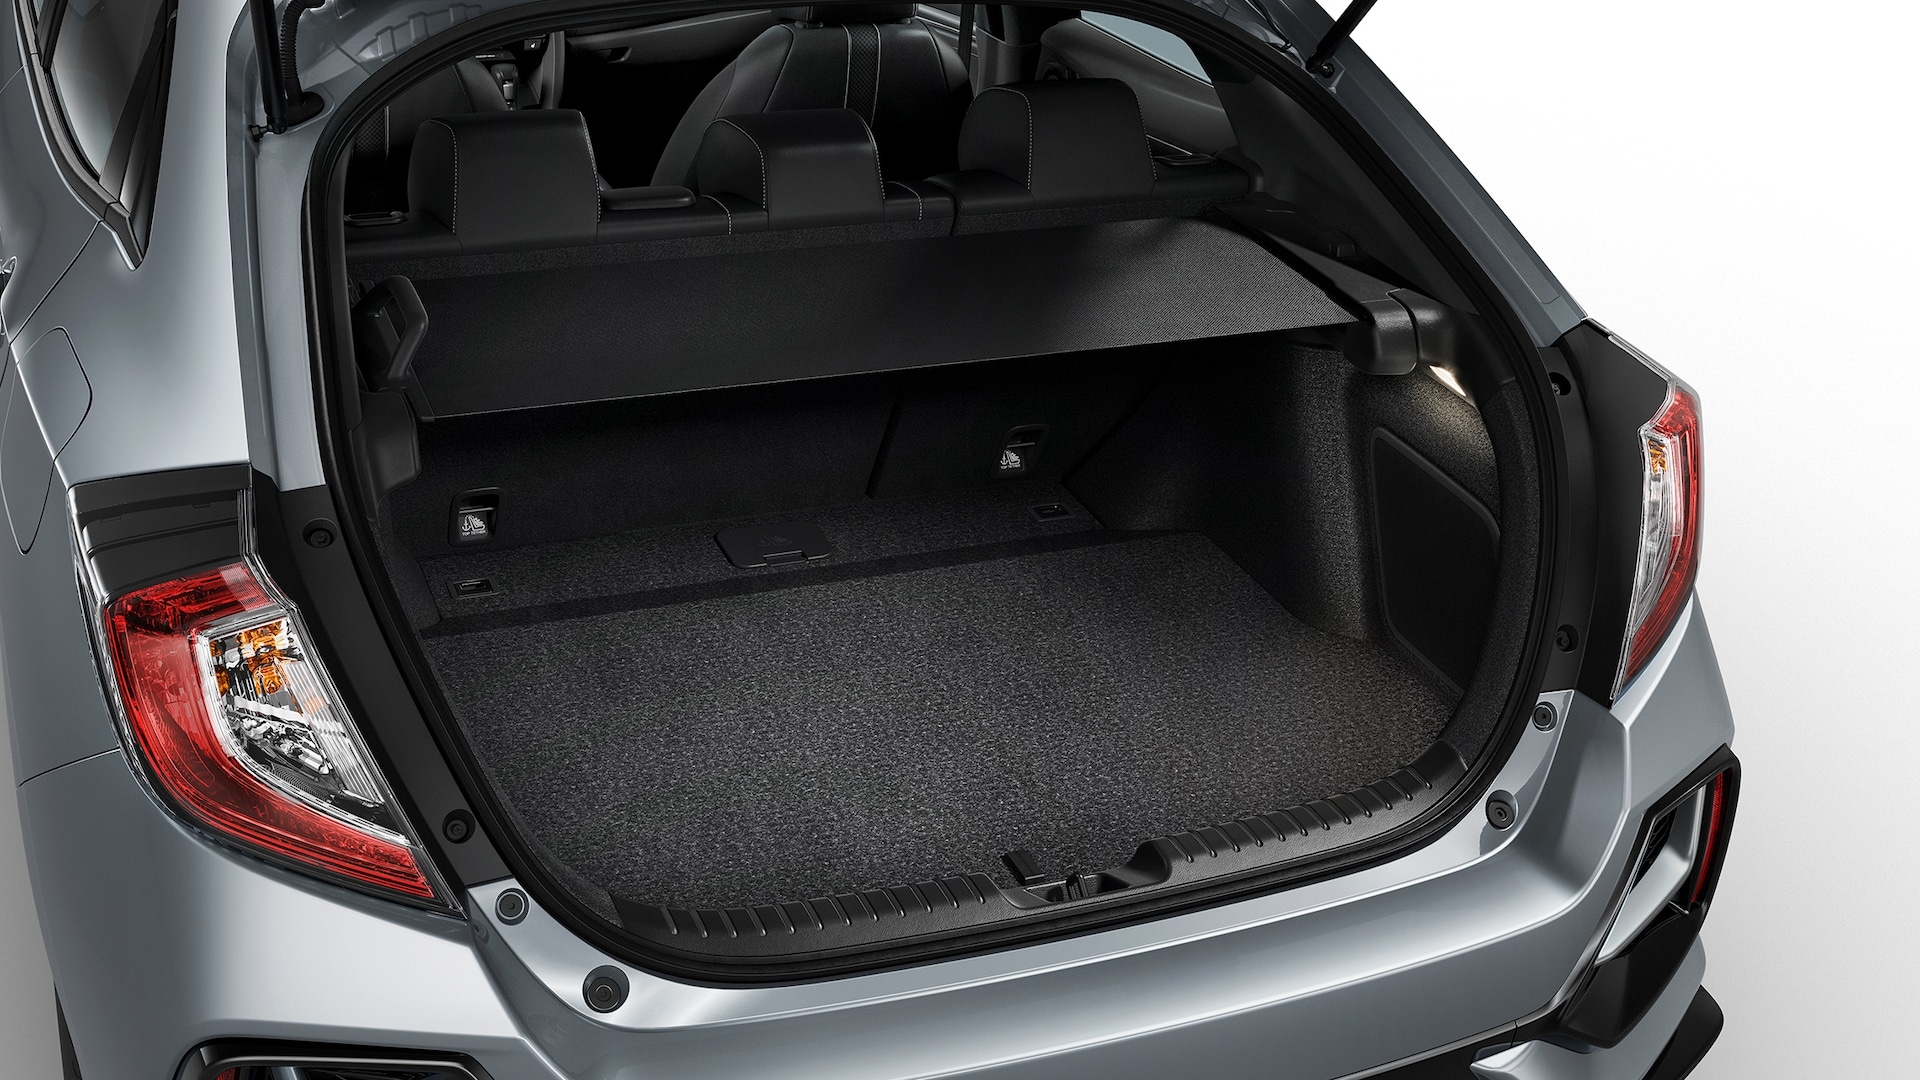 Cargo area of 2020 Honda Civic Sport Touring Hatchback with cargo cover extended.